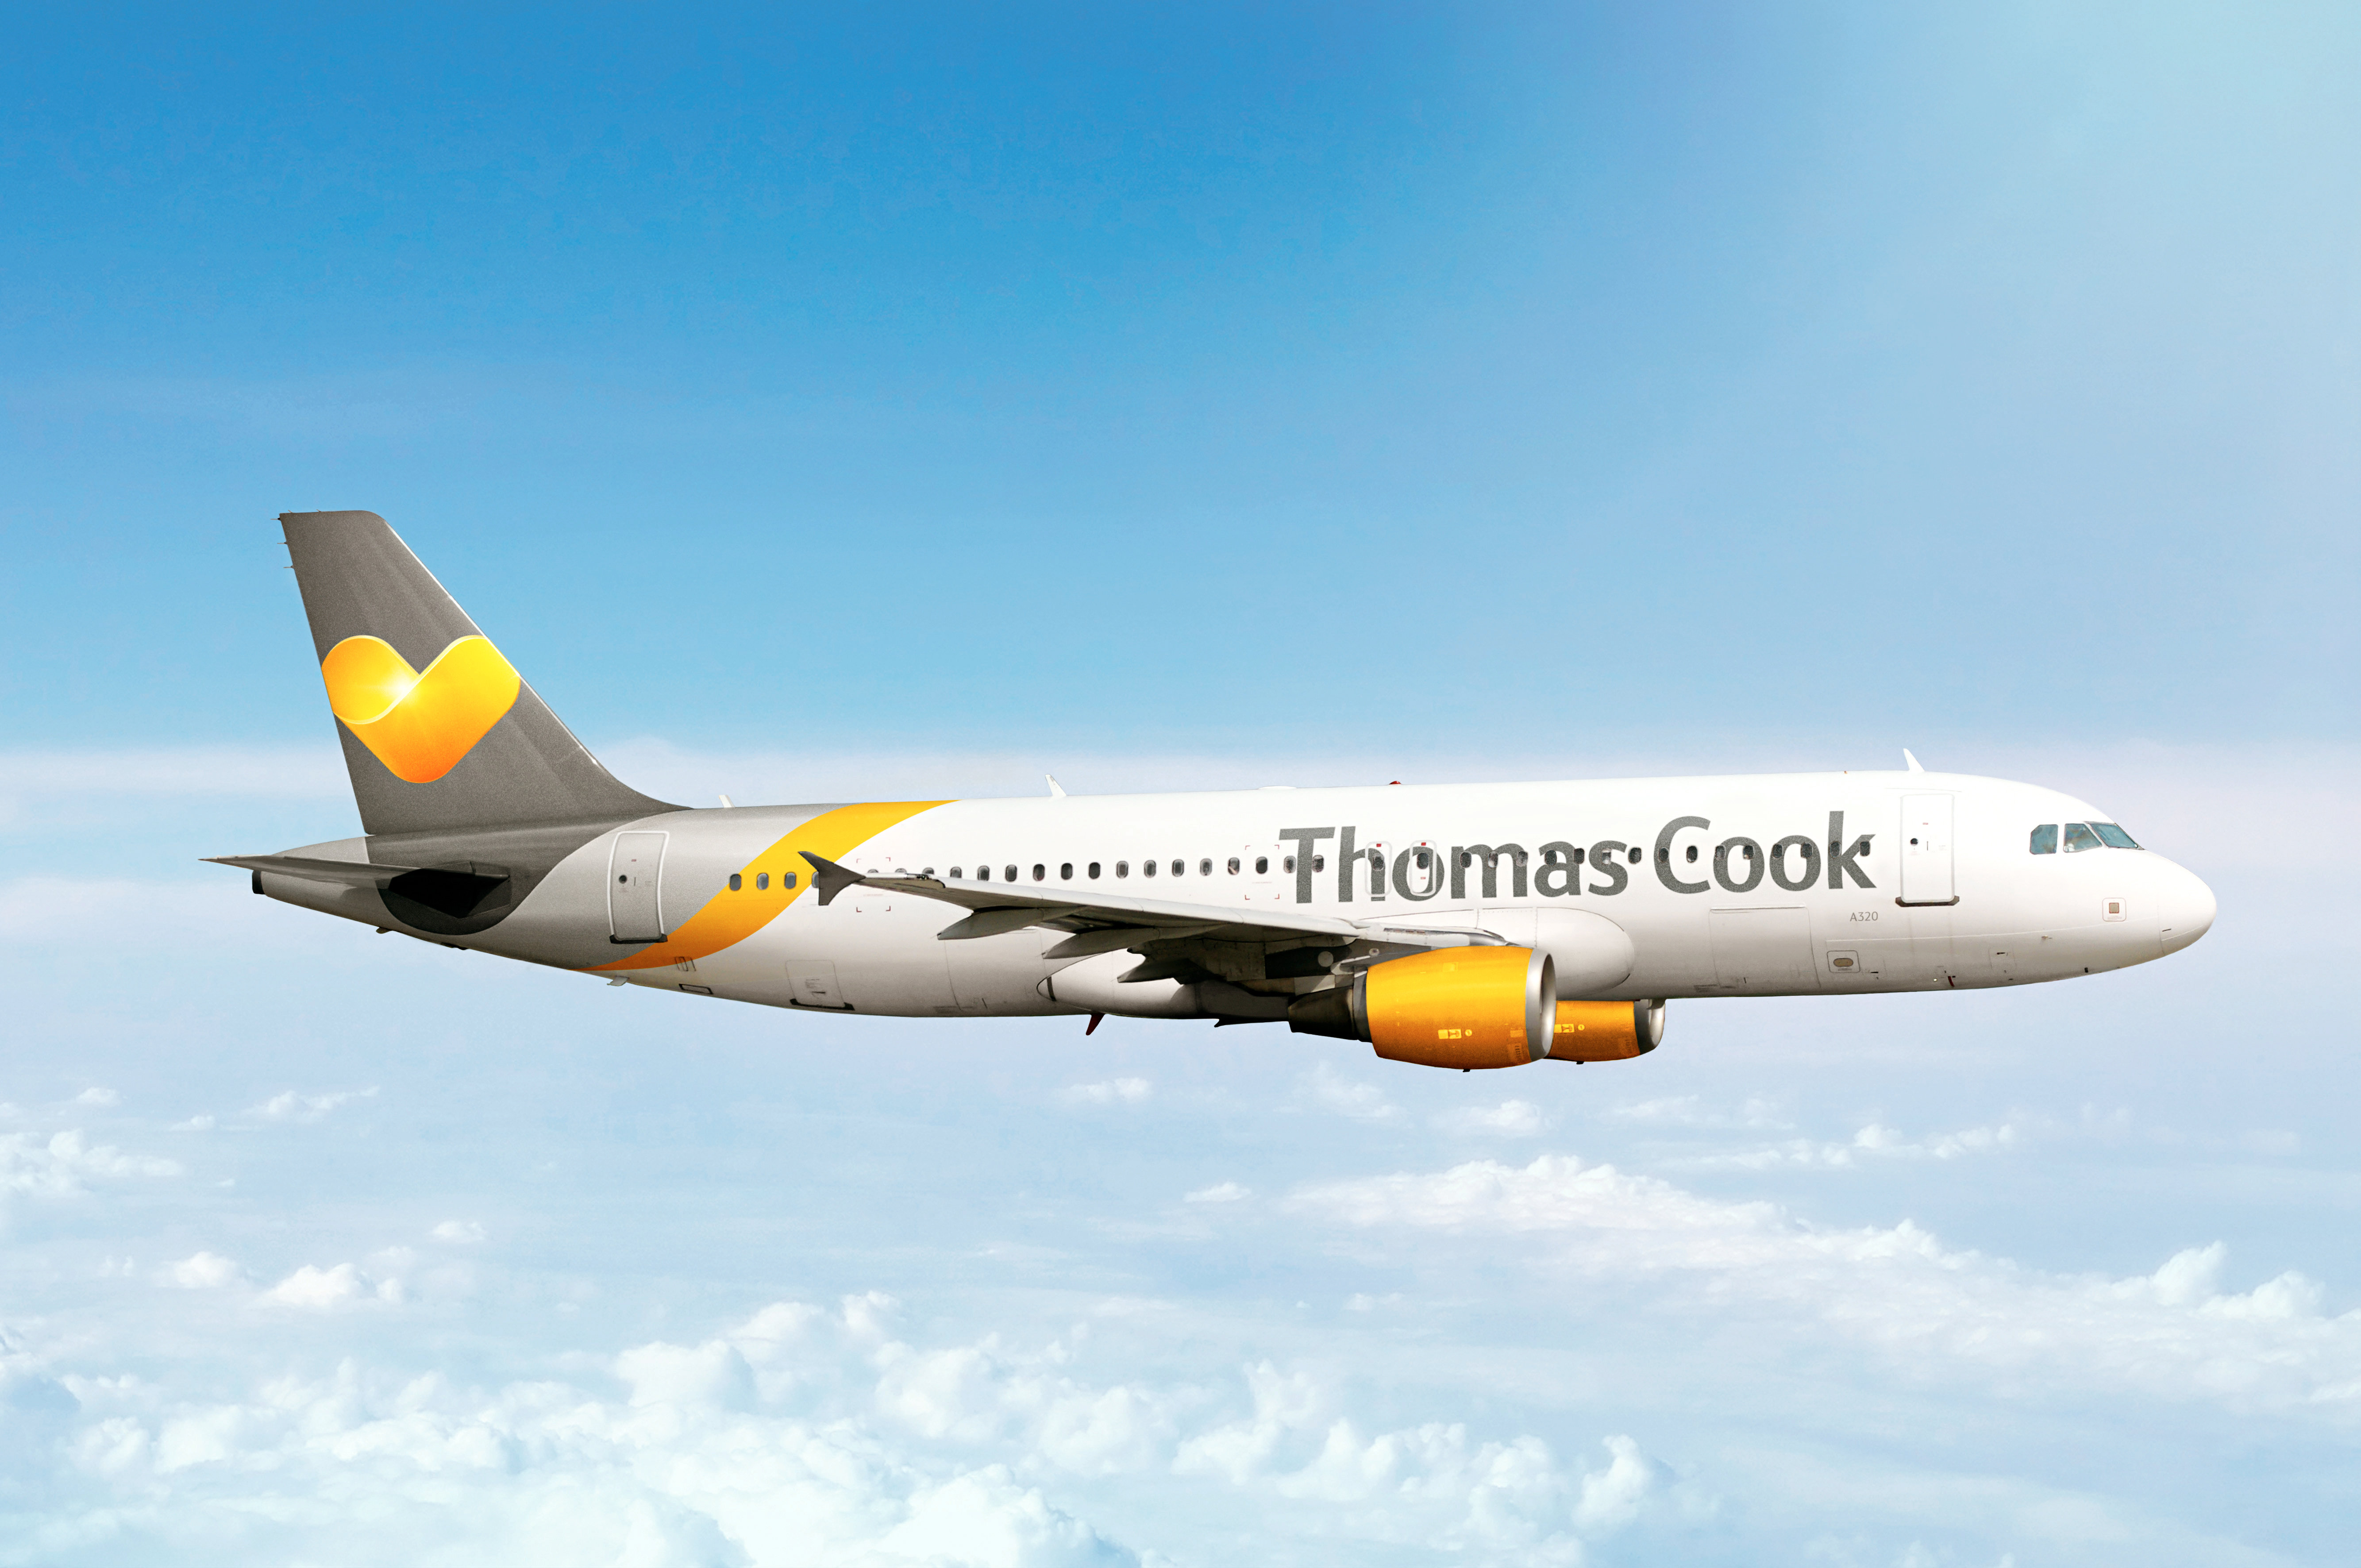 Thomas Cook fly i luften